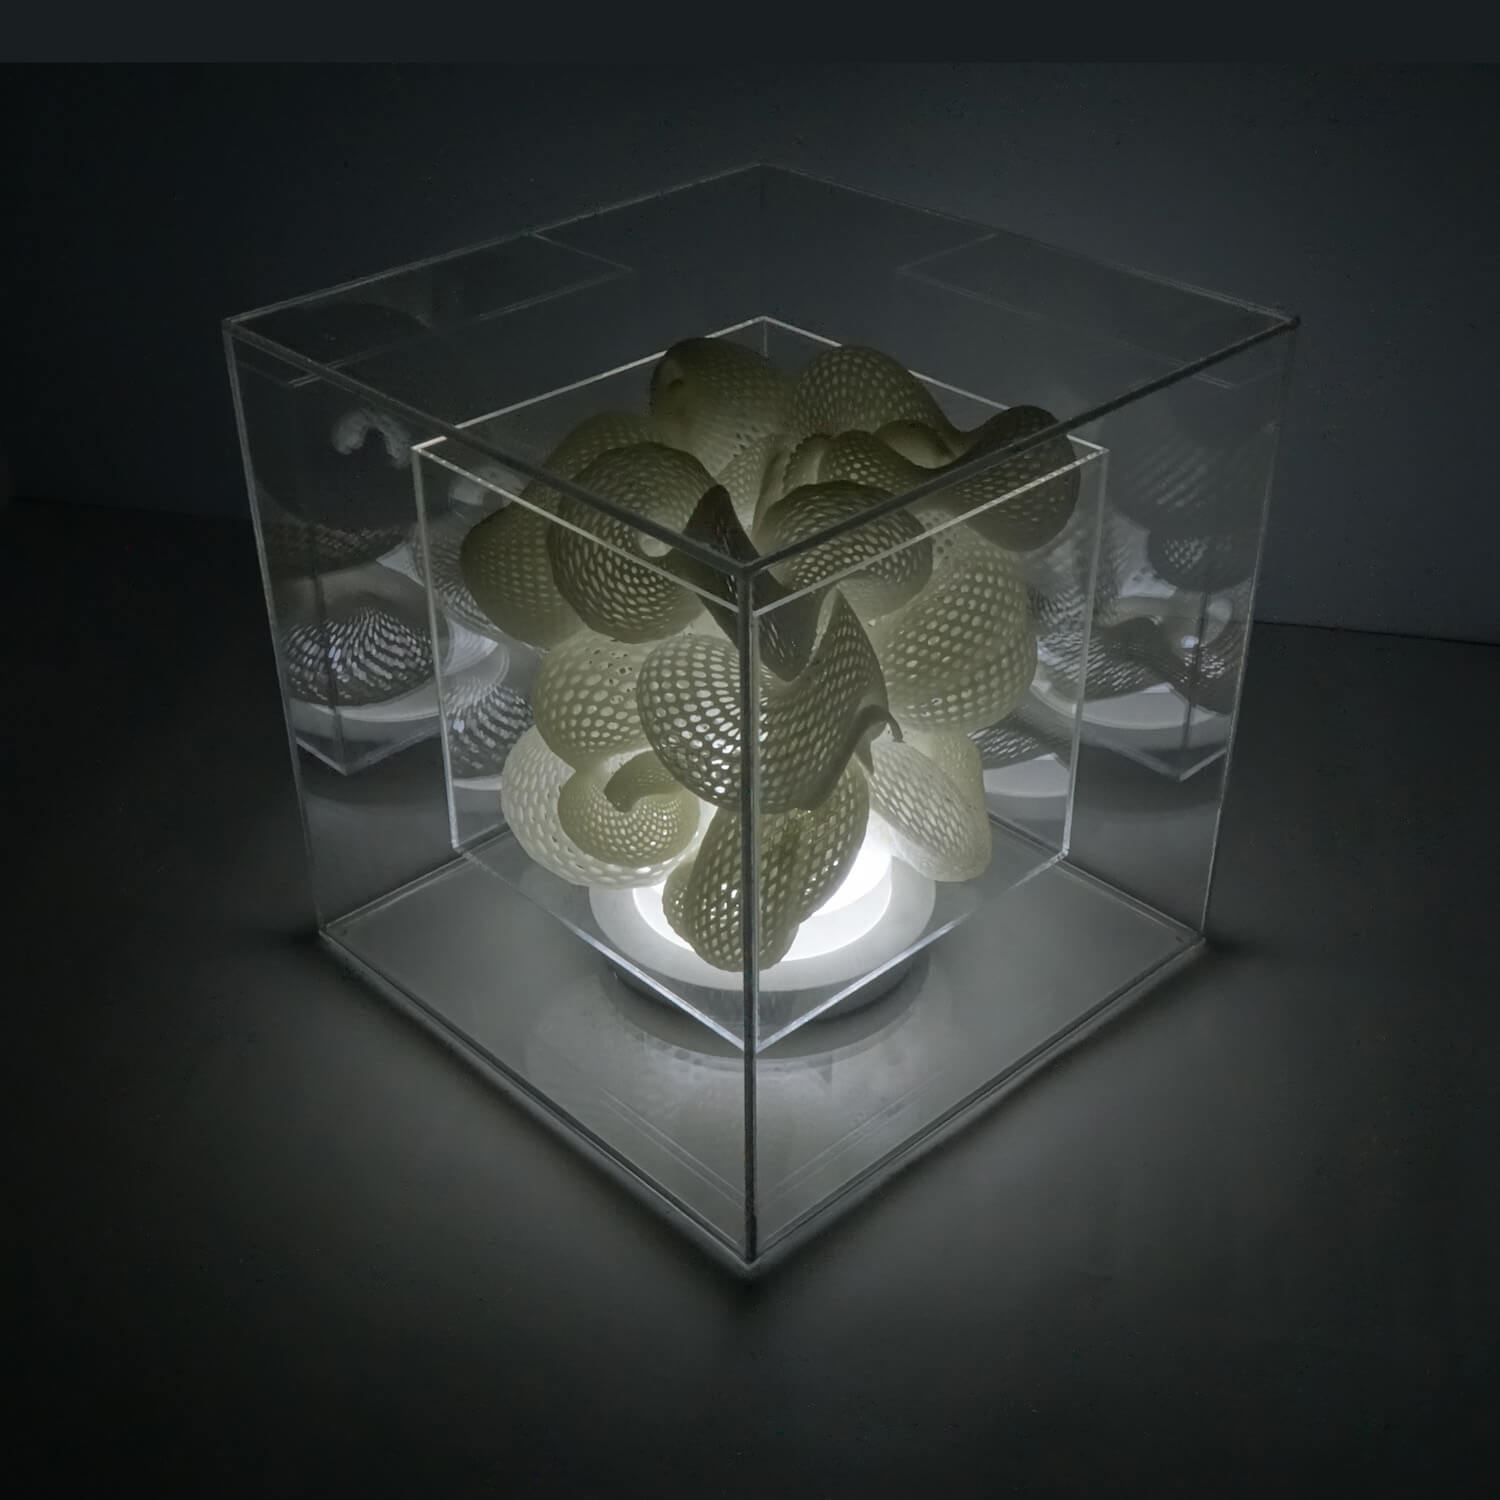 Hurricane Desktop Lighting Installation by Naai-Jung Shih